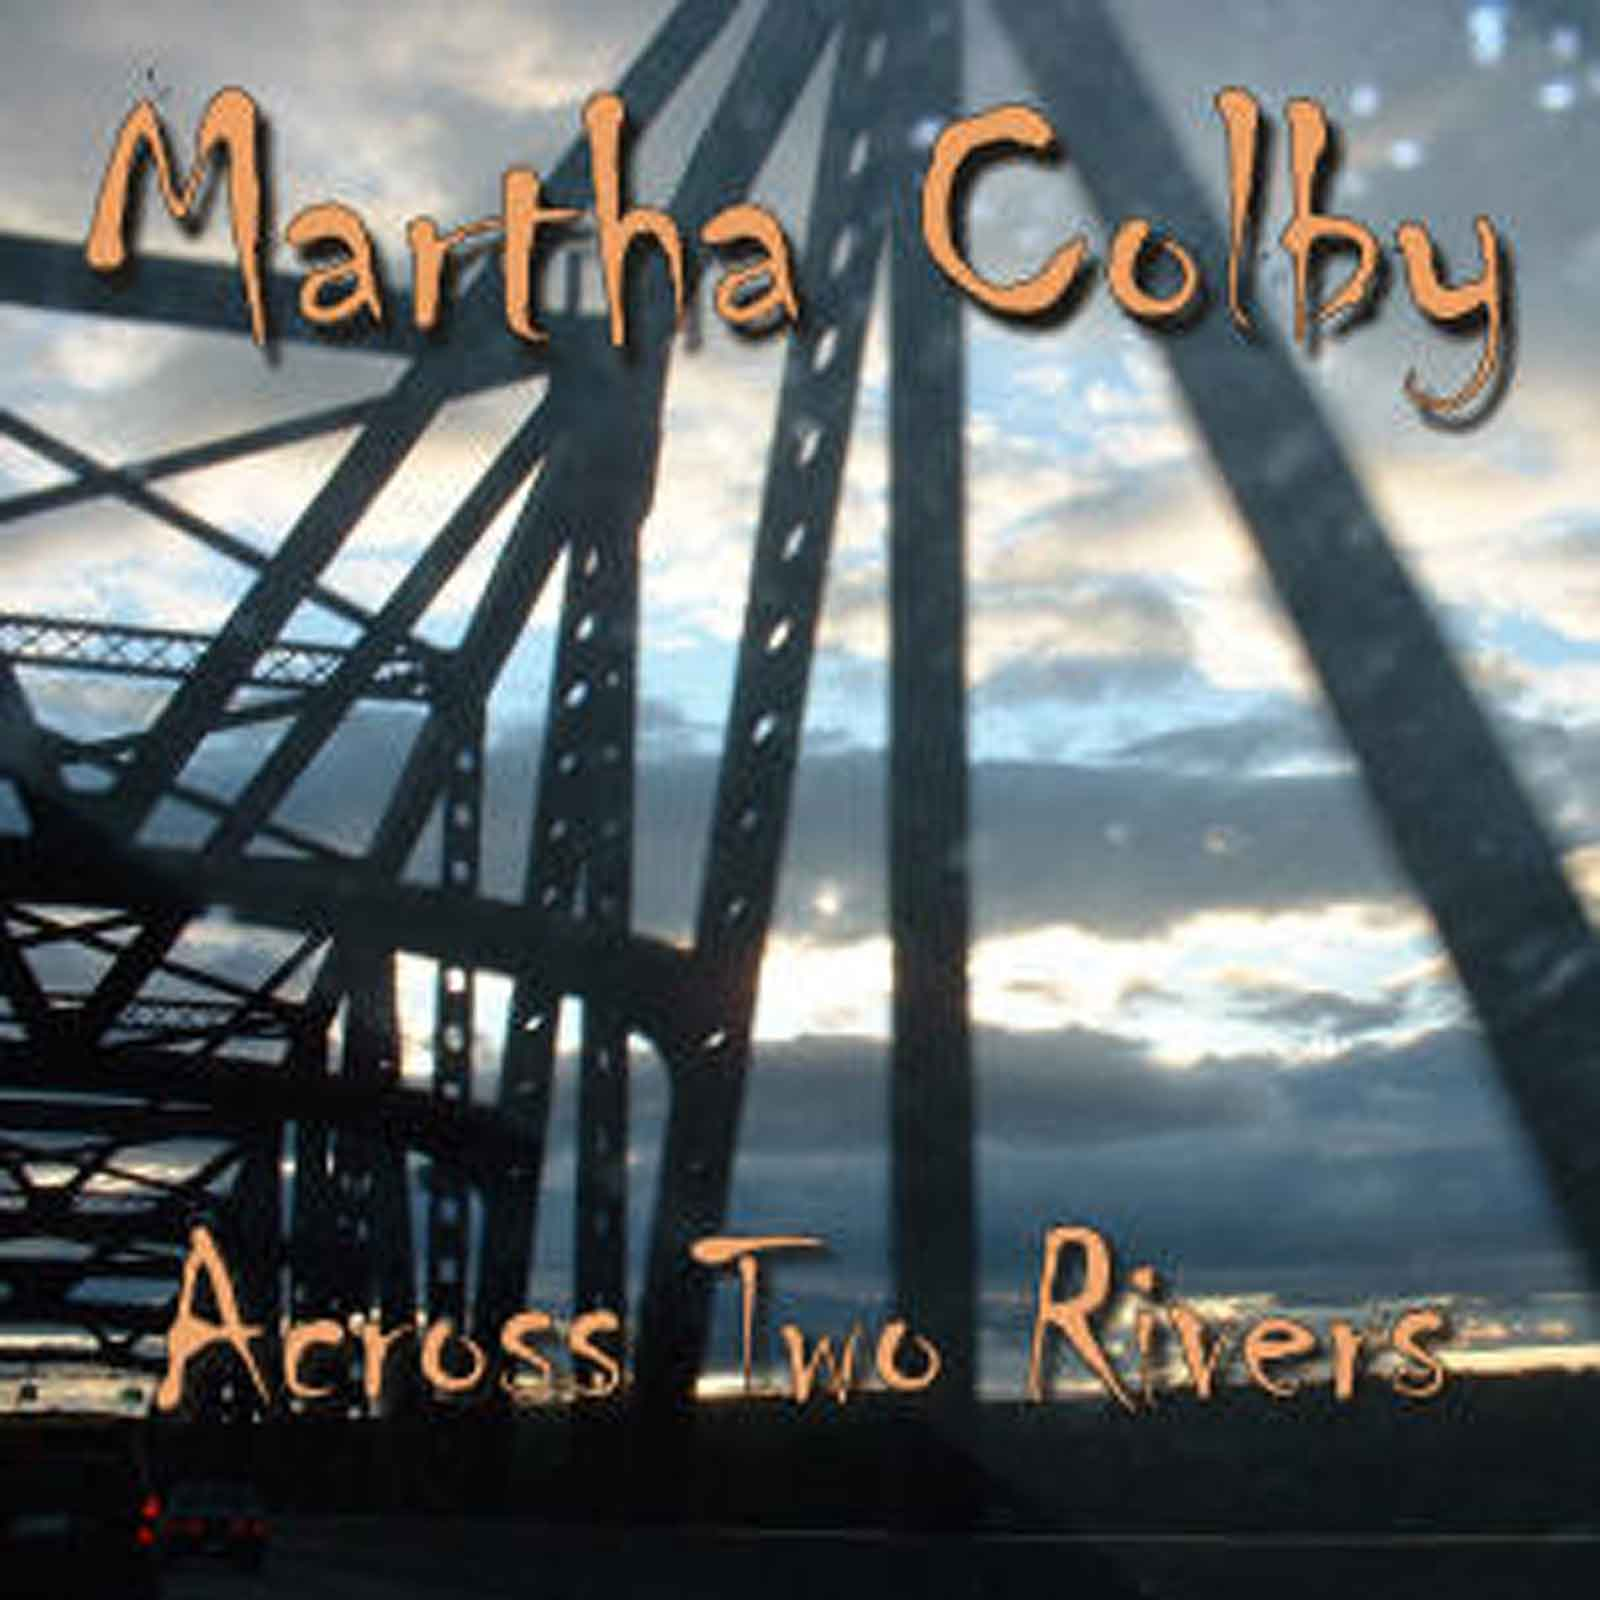 Martha Colby - Across Two Rivers - 2005